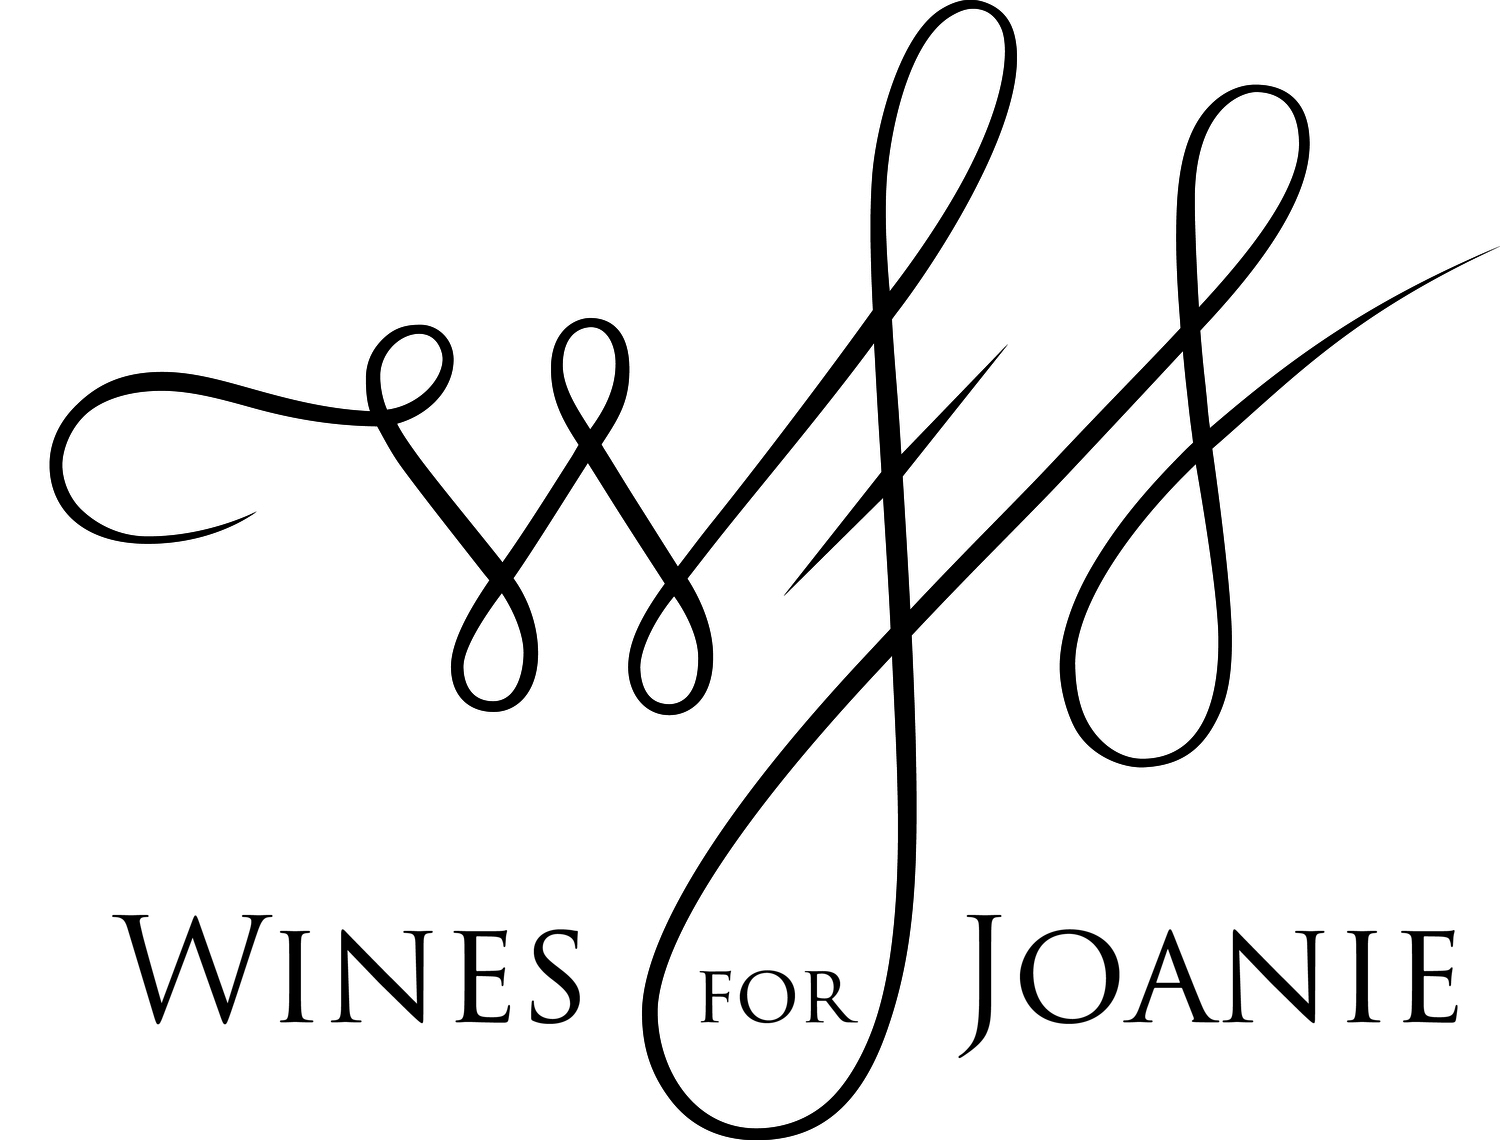 Wines for Joanie